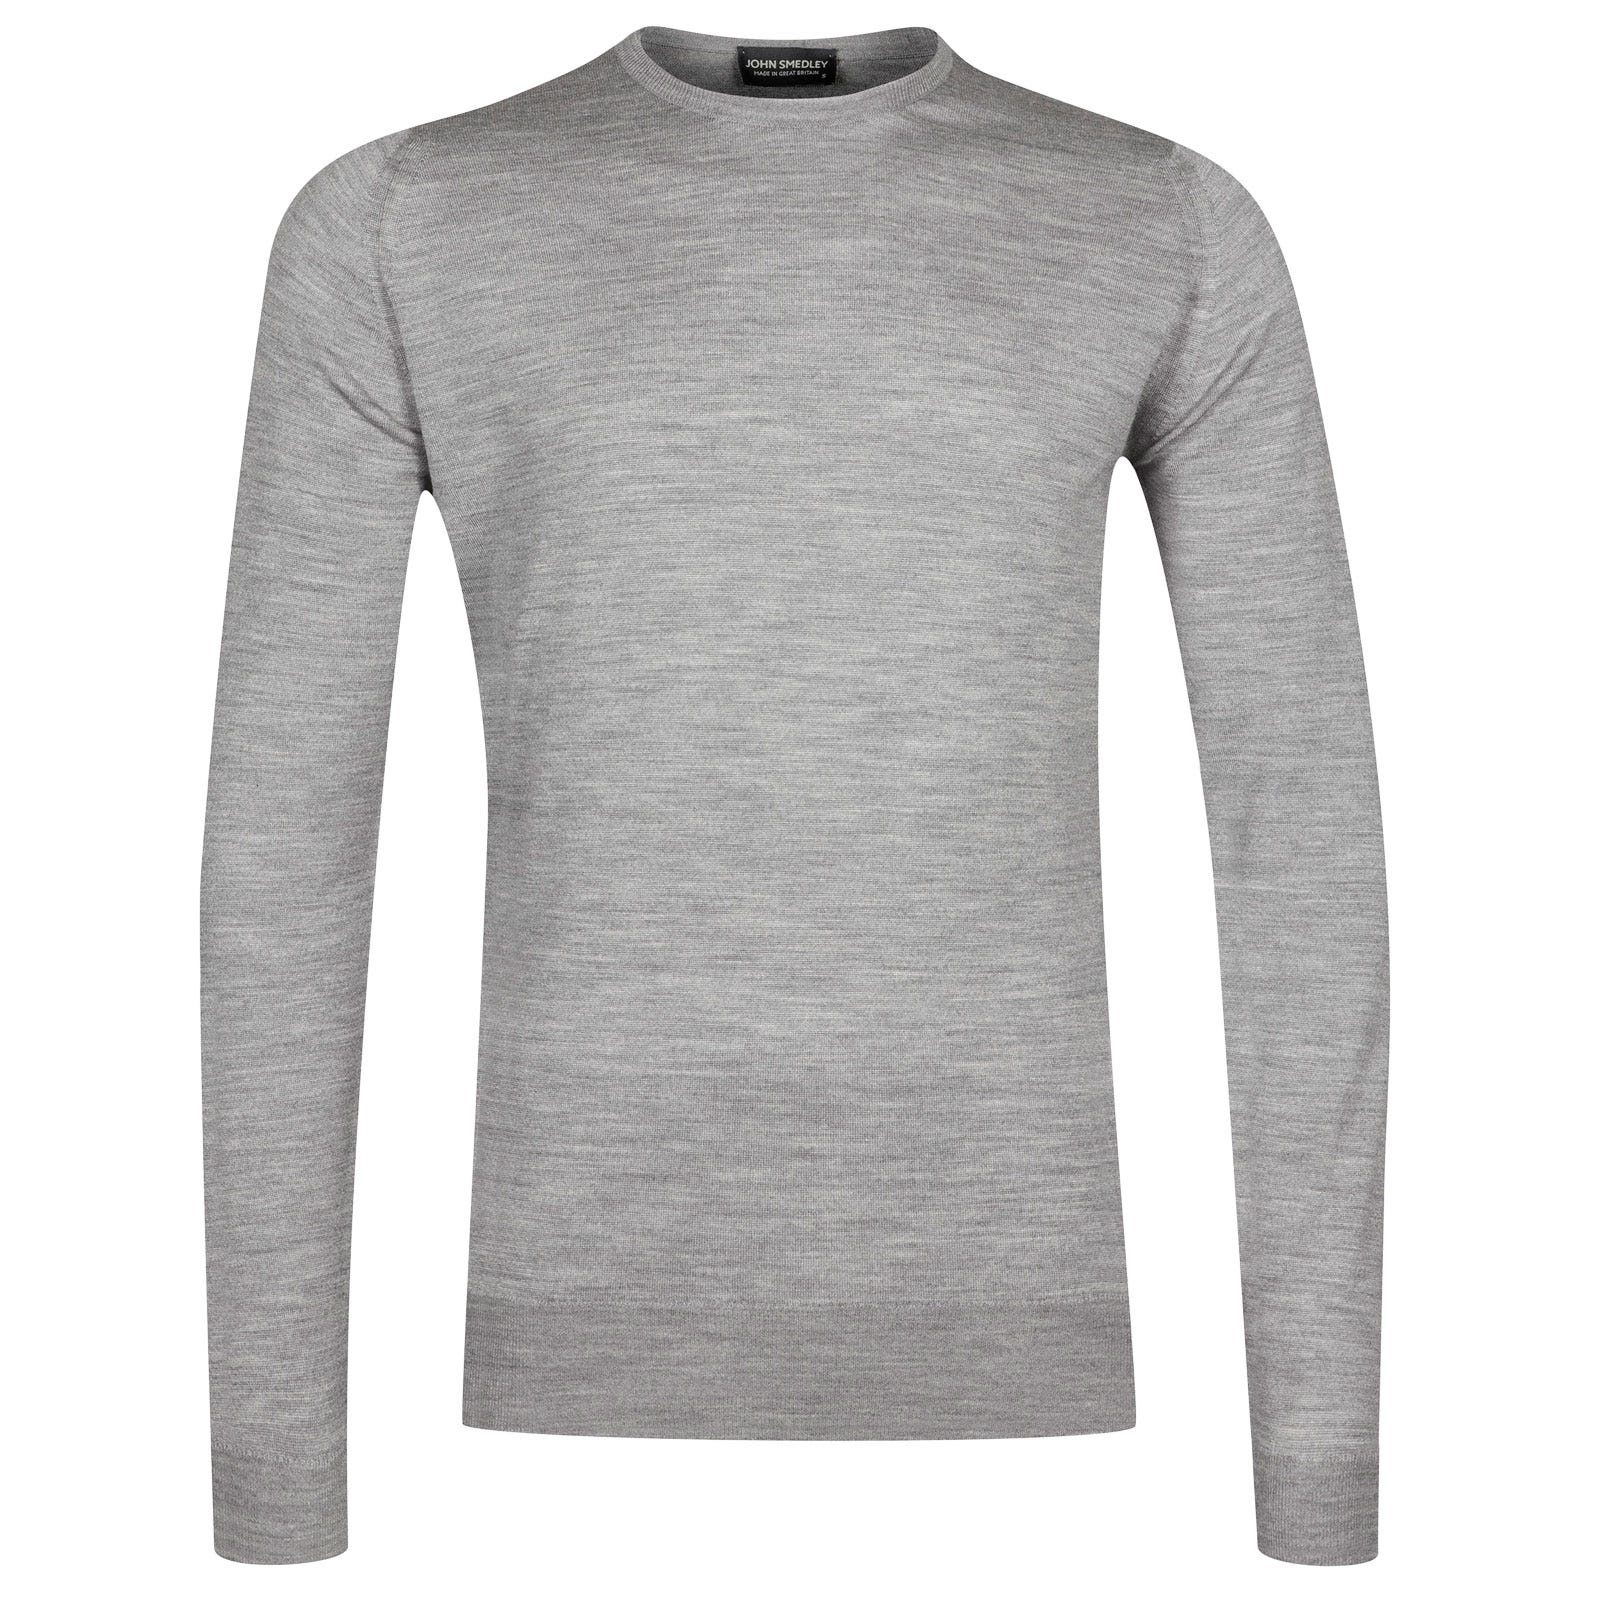 John Smedley lundy Merino Wool Pullover in Silver-XL